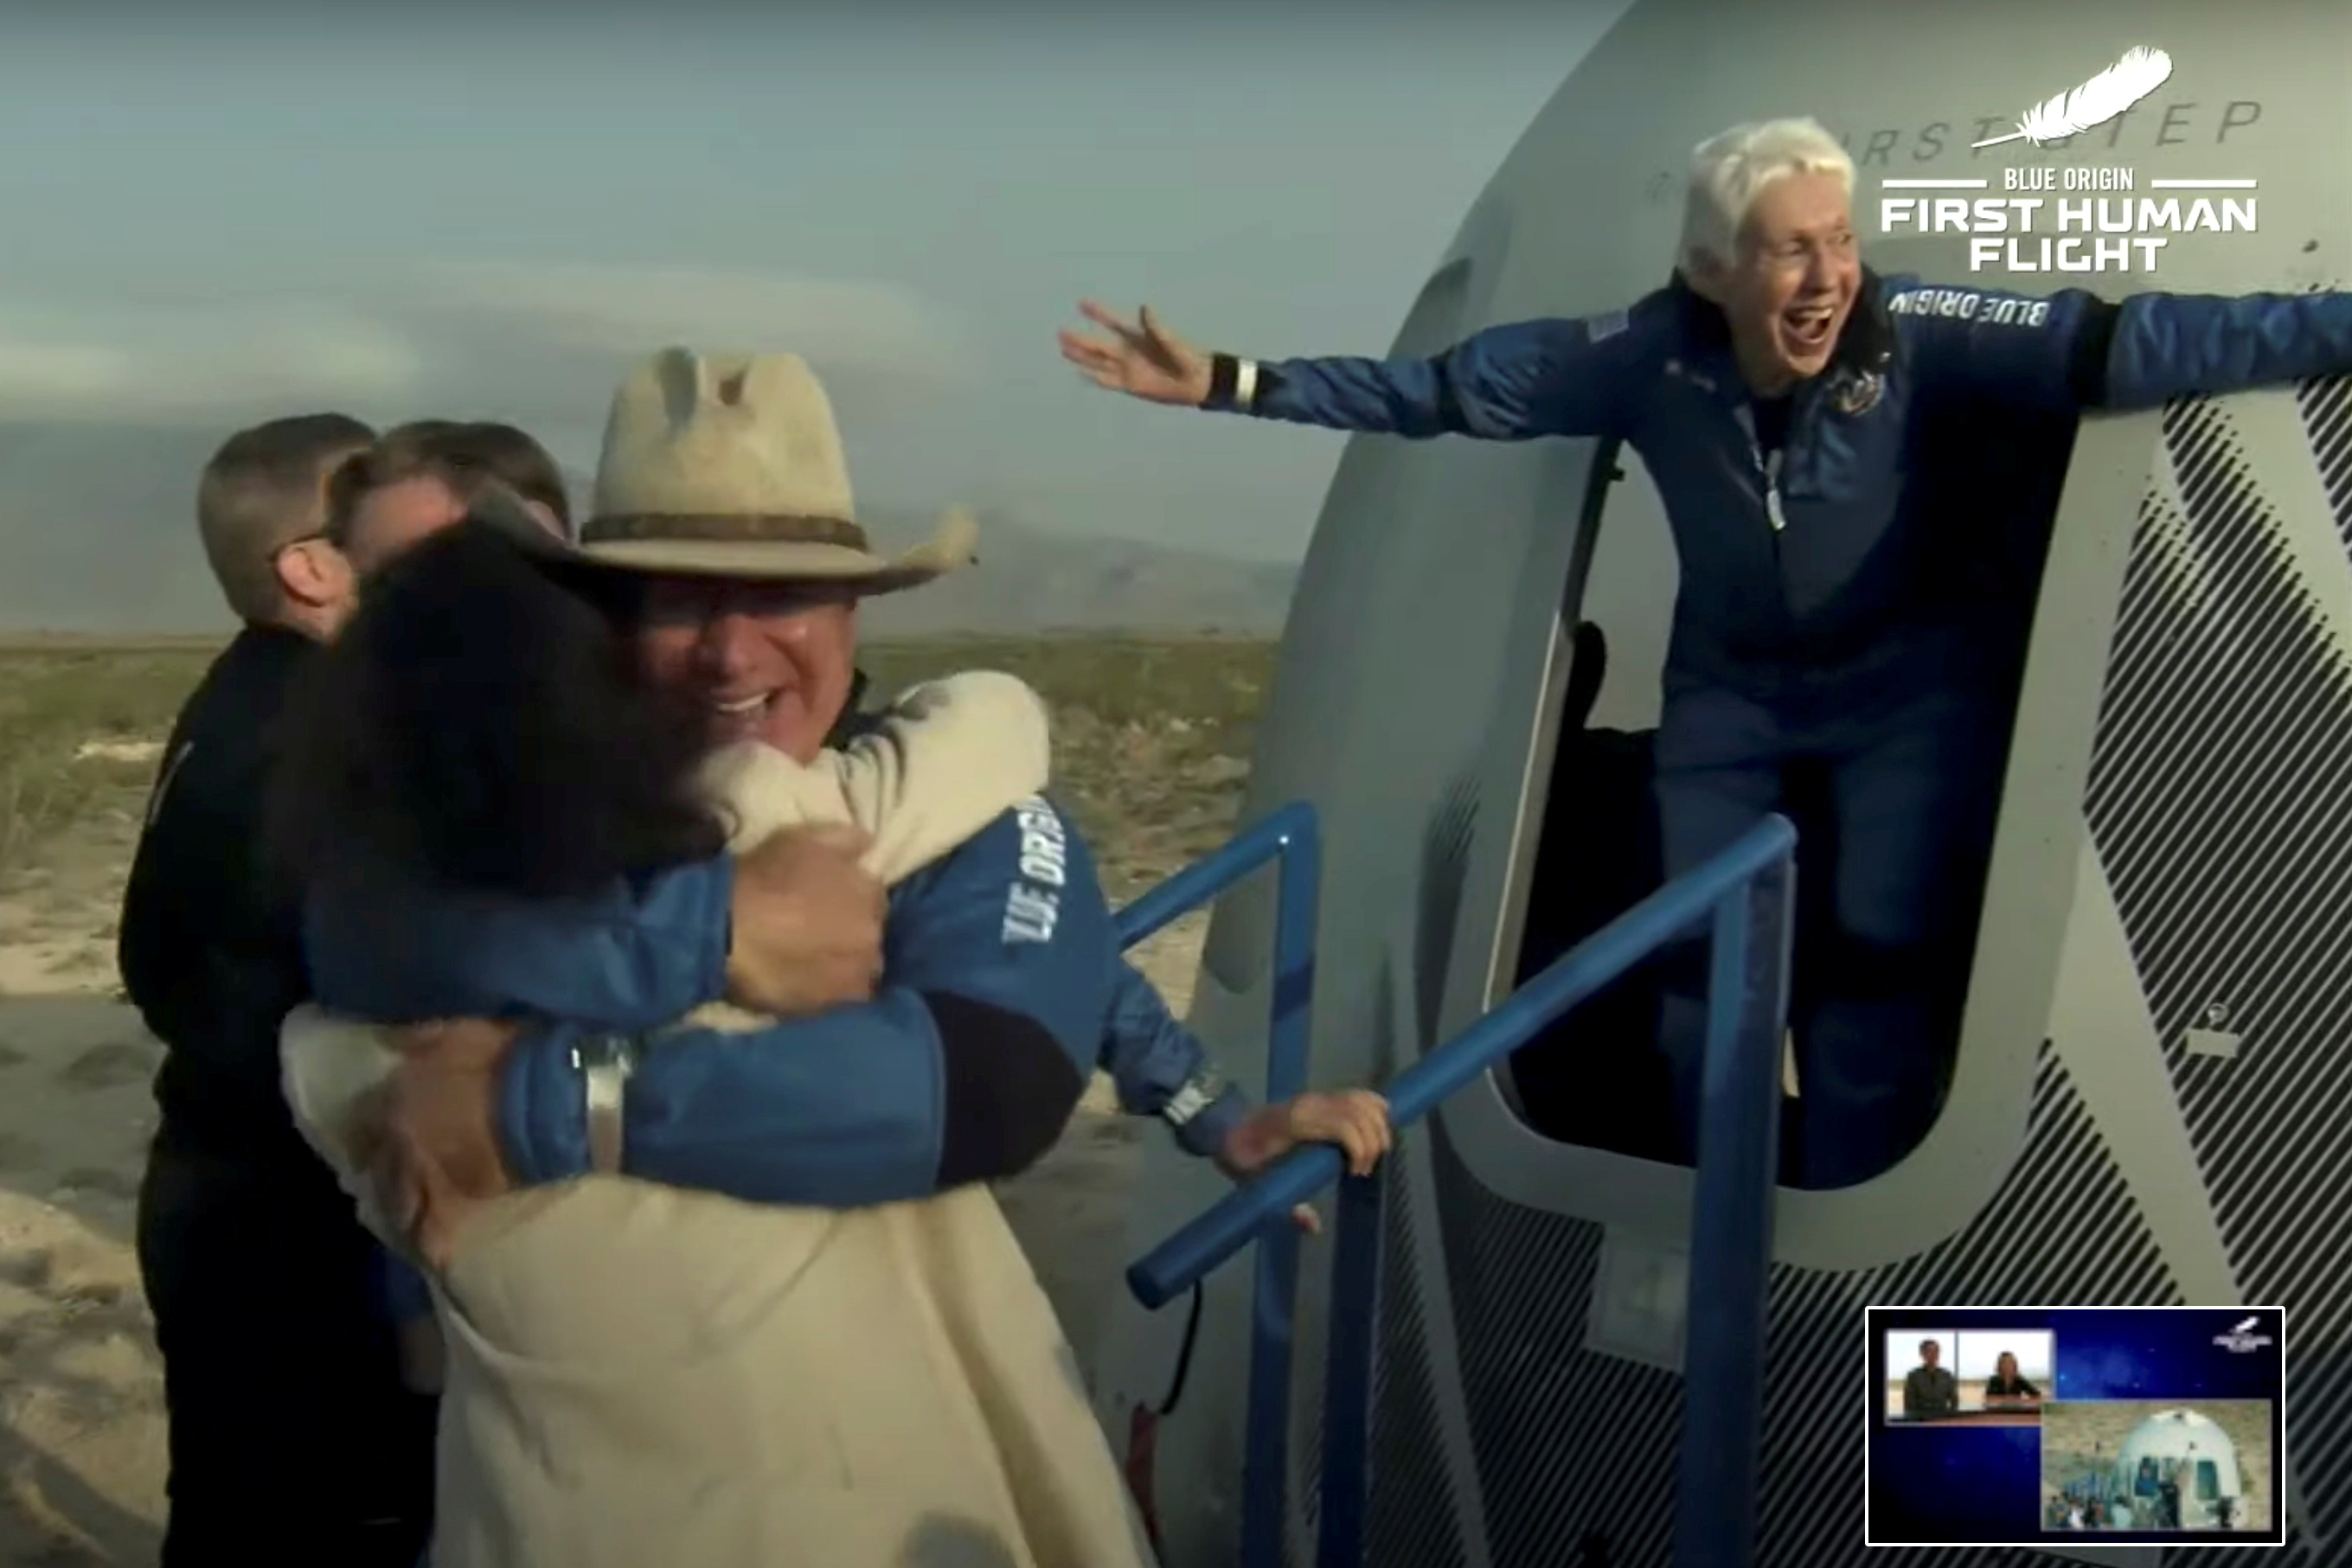 Wally Funk spreads her arms as she exits the New Shepard capsule